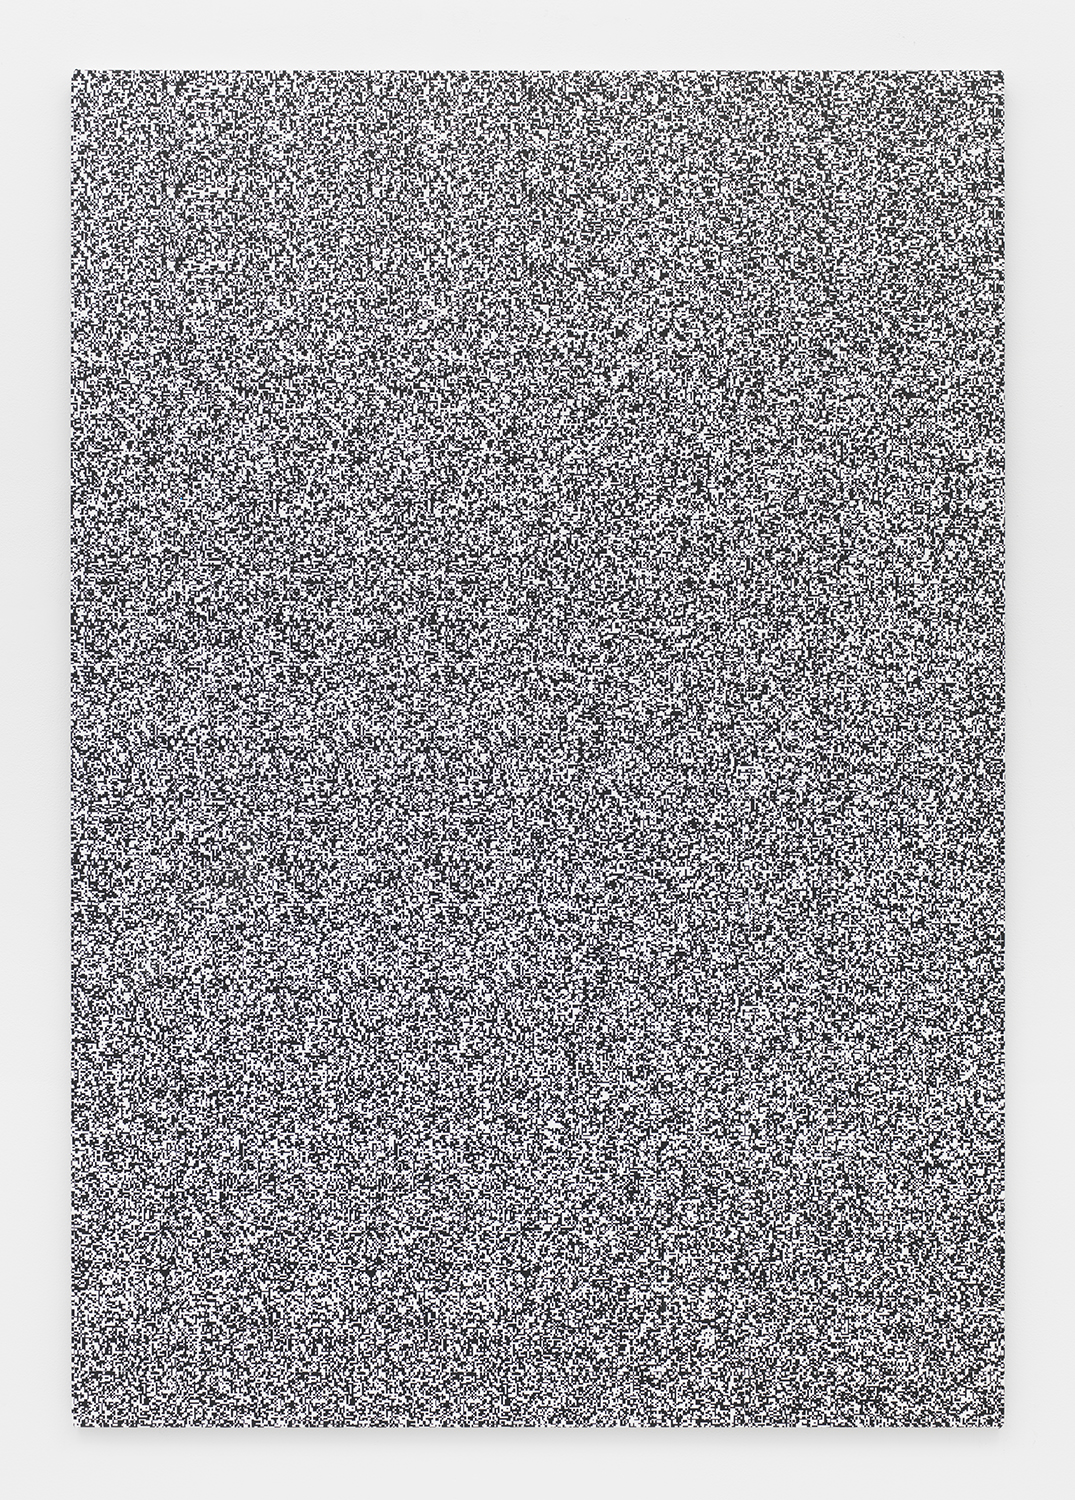 Haley Mellin  Untitled 096 , 2014 Ink, oil and gesso on canvas 64 x 44 inches